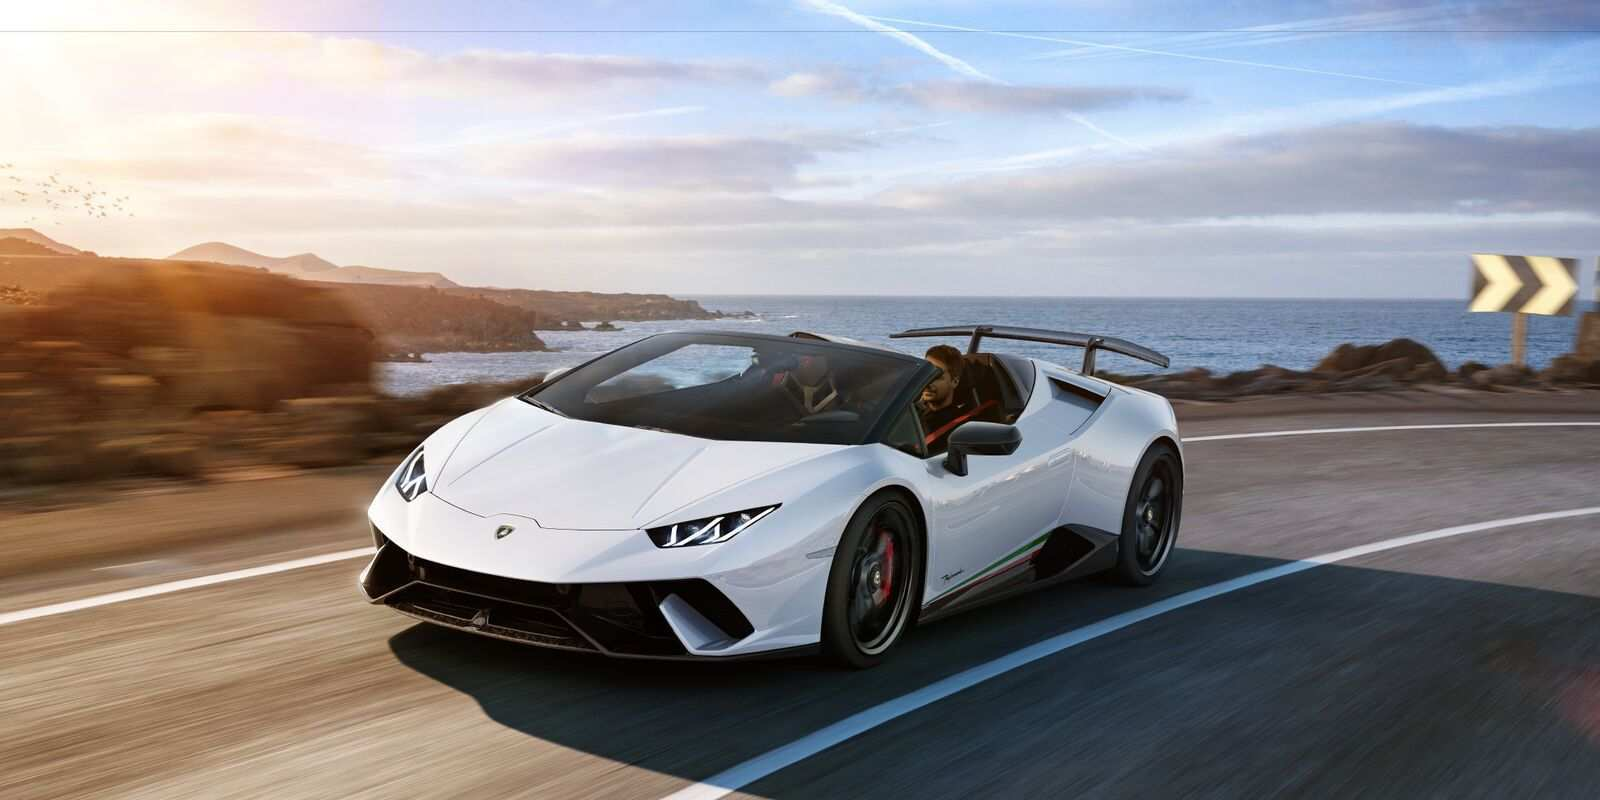 17 New 2019 Lamborghini Huracan Performante Prices by 2019 Lamborghini Huracan Performante